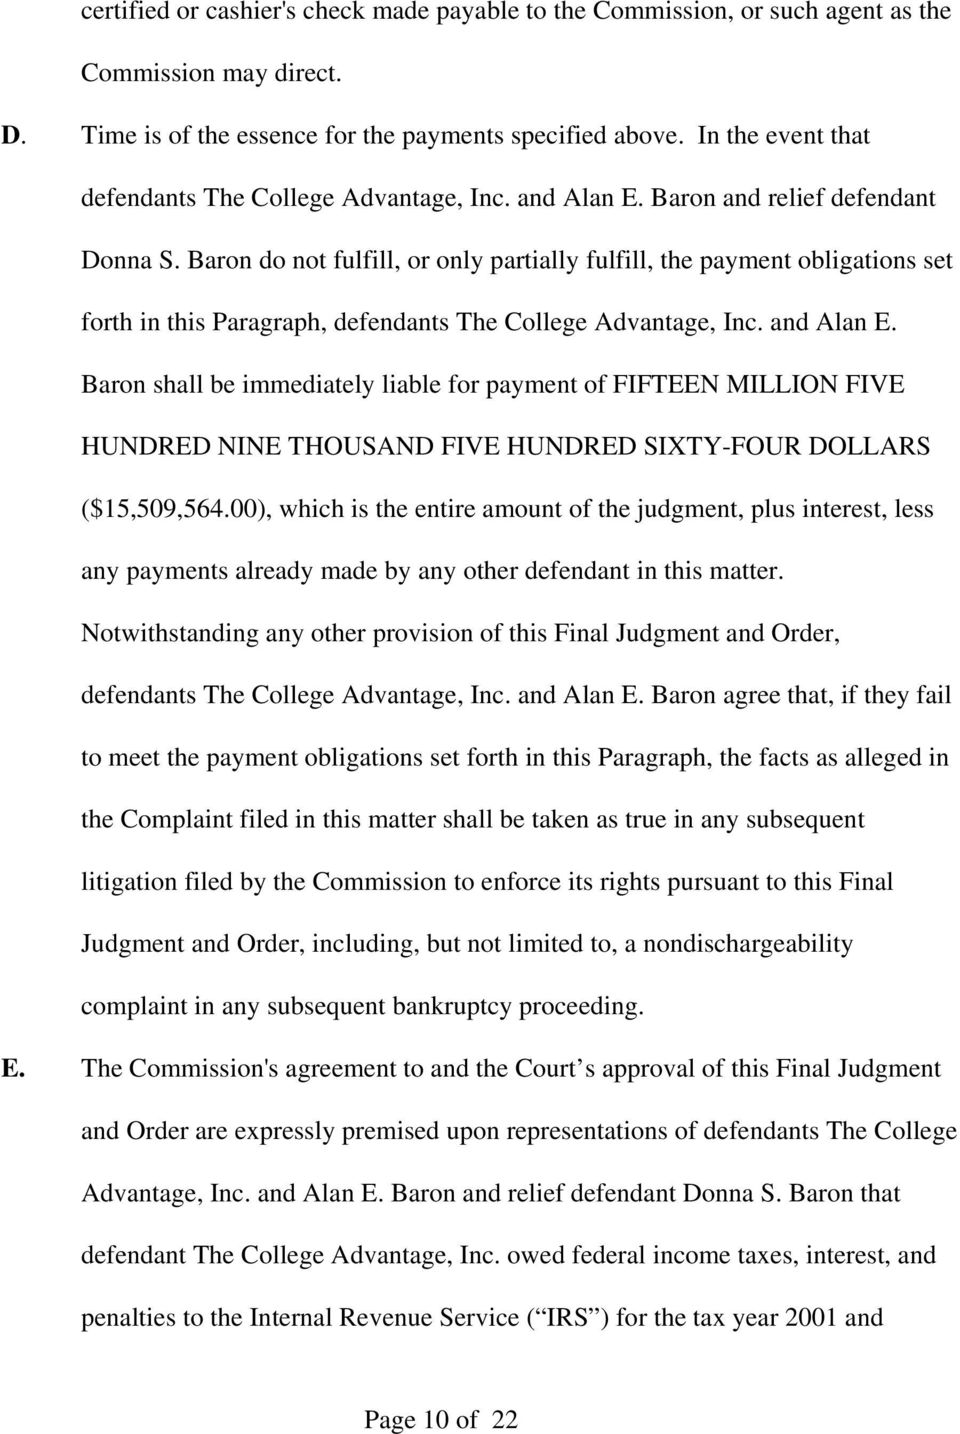 Baron do not fulfill, or only partially fulfill, the payment obligations set forth in this Paragraph, defendants The College Advantage, Inc. and Alan E.